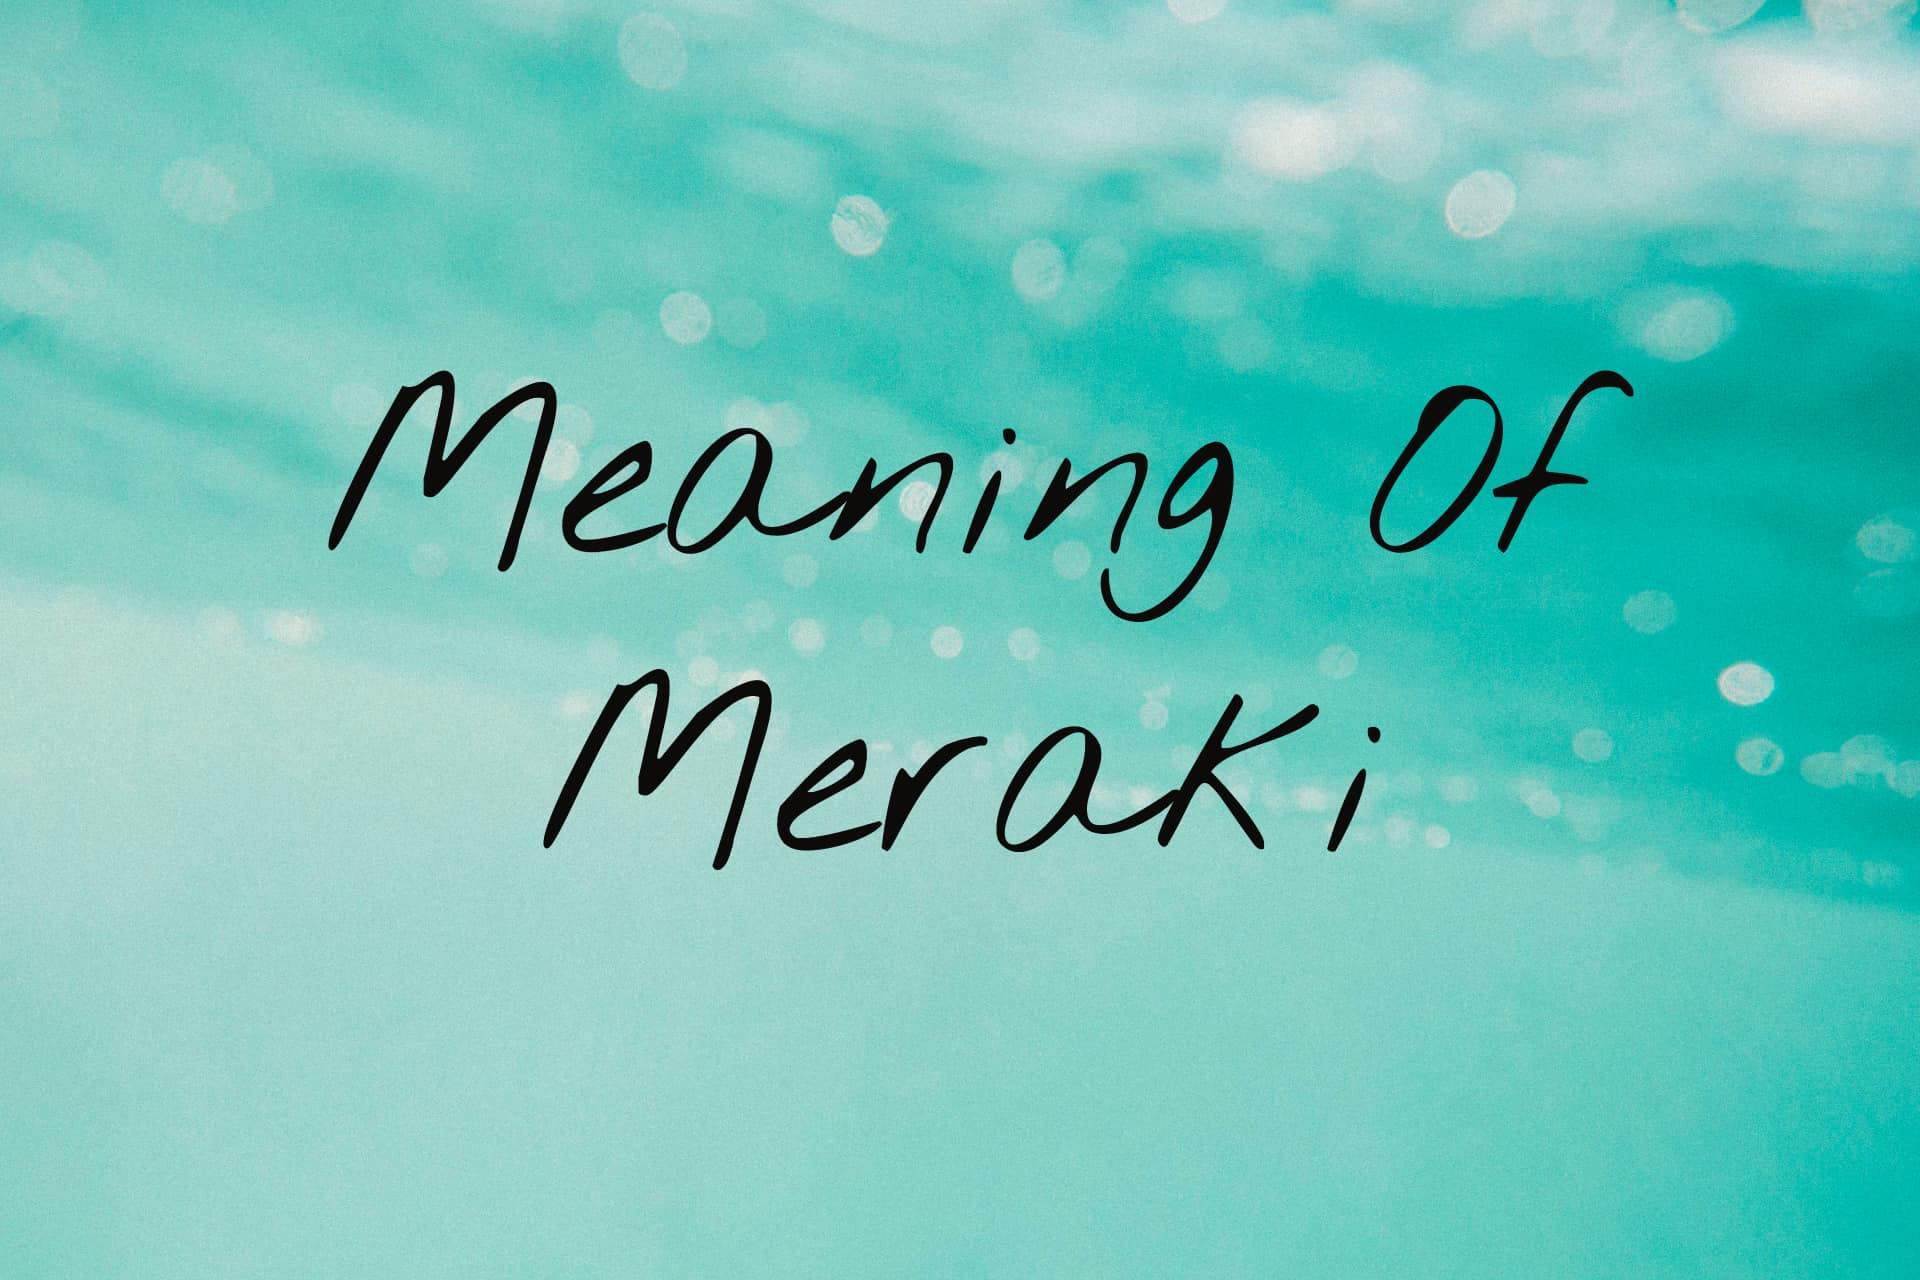 What does Meraki Mean